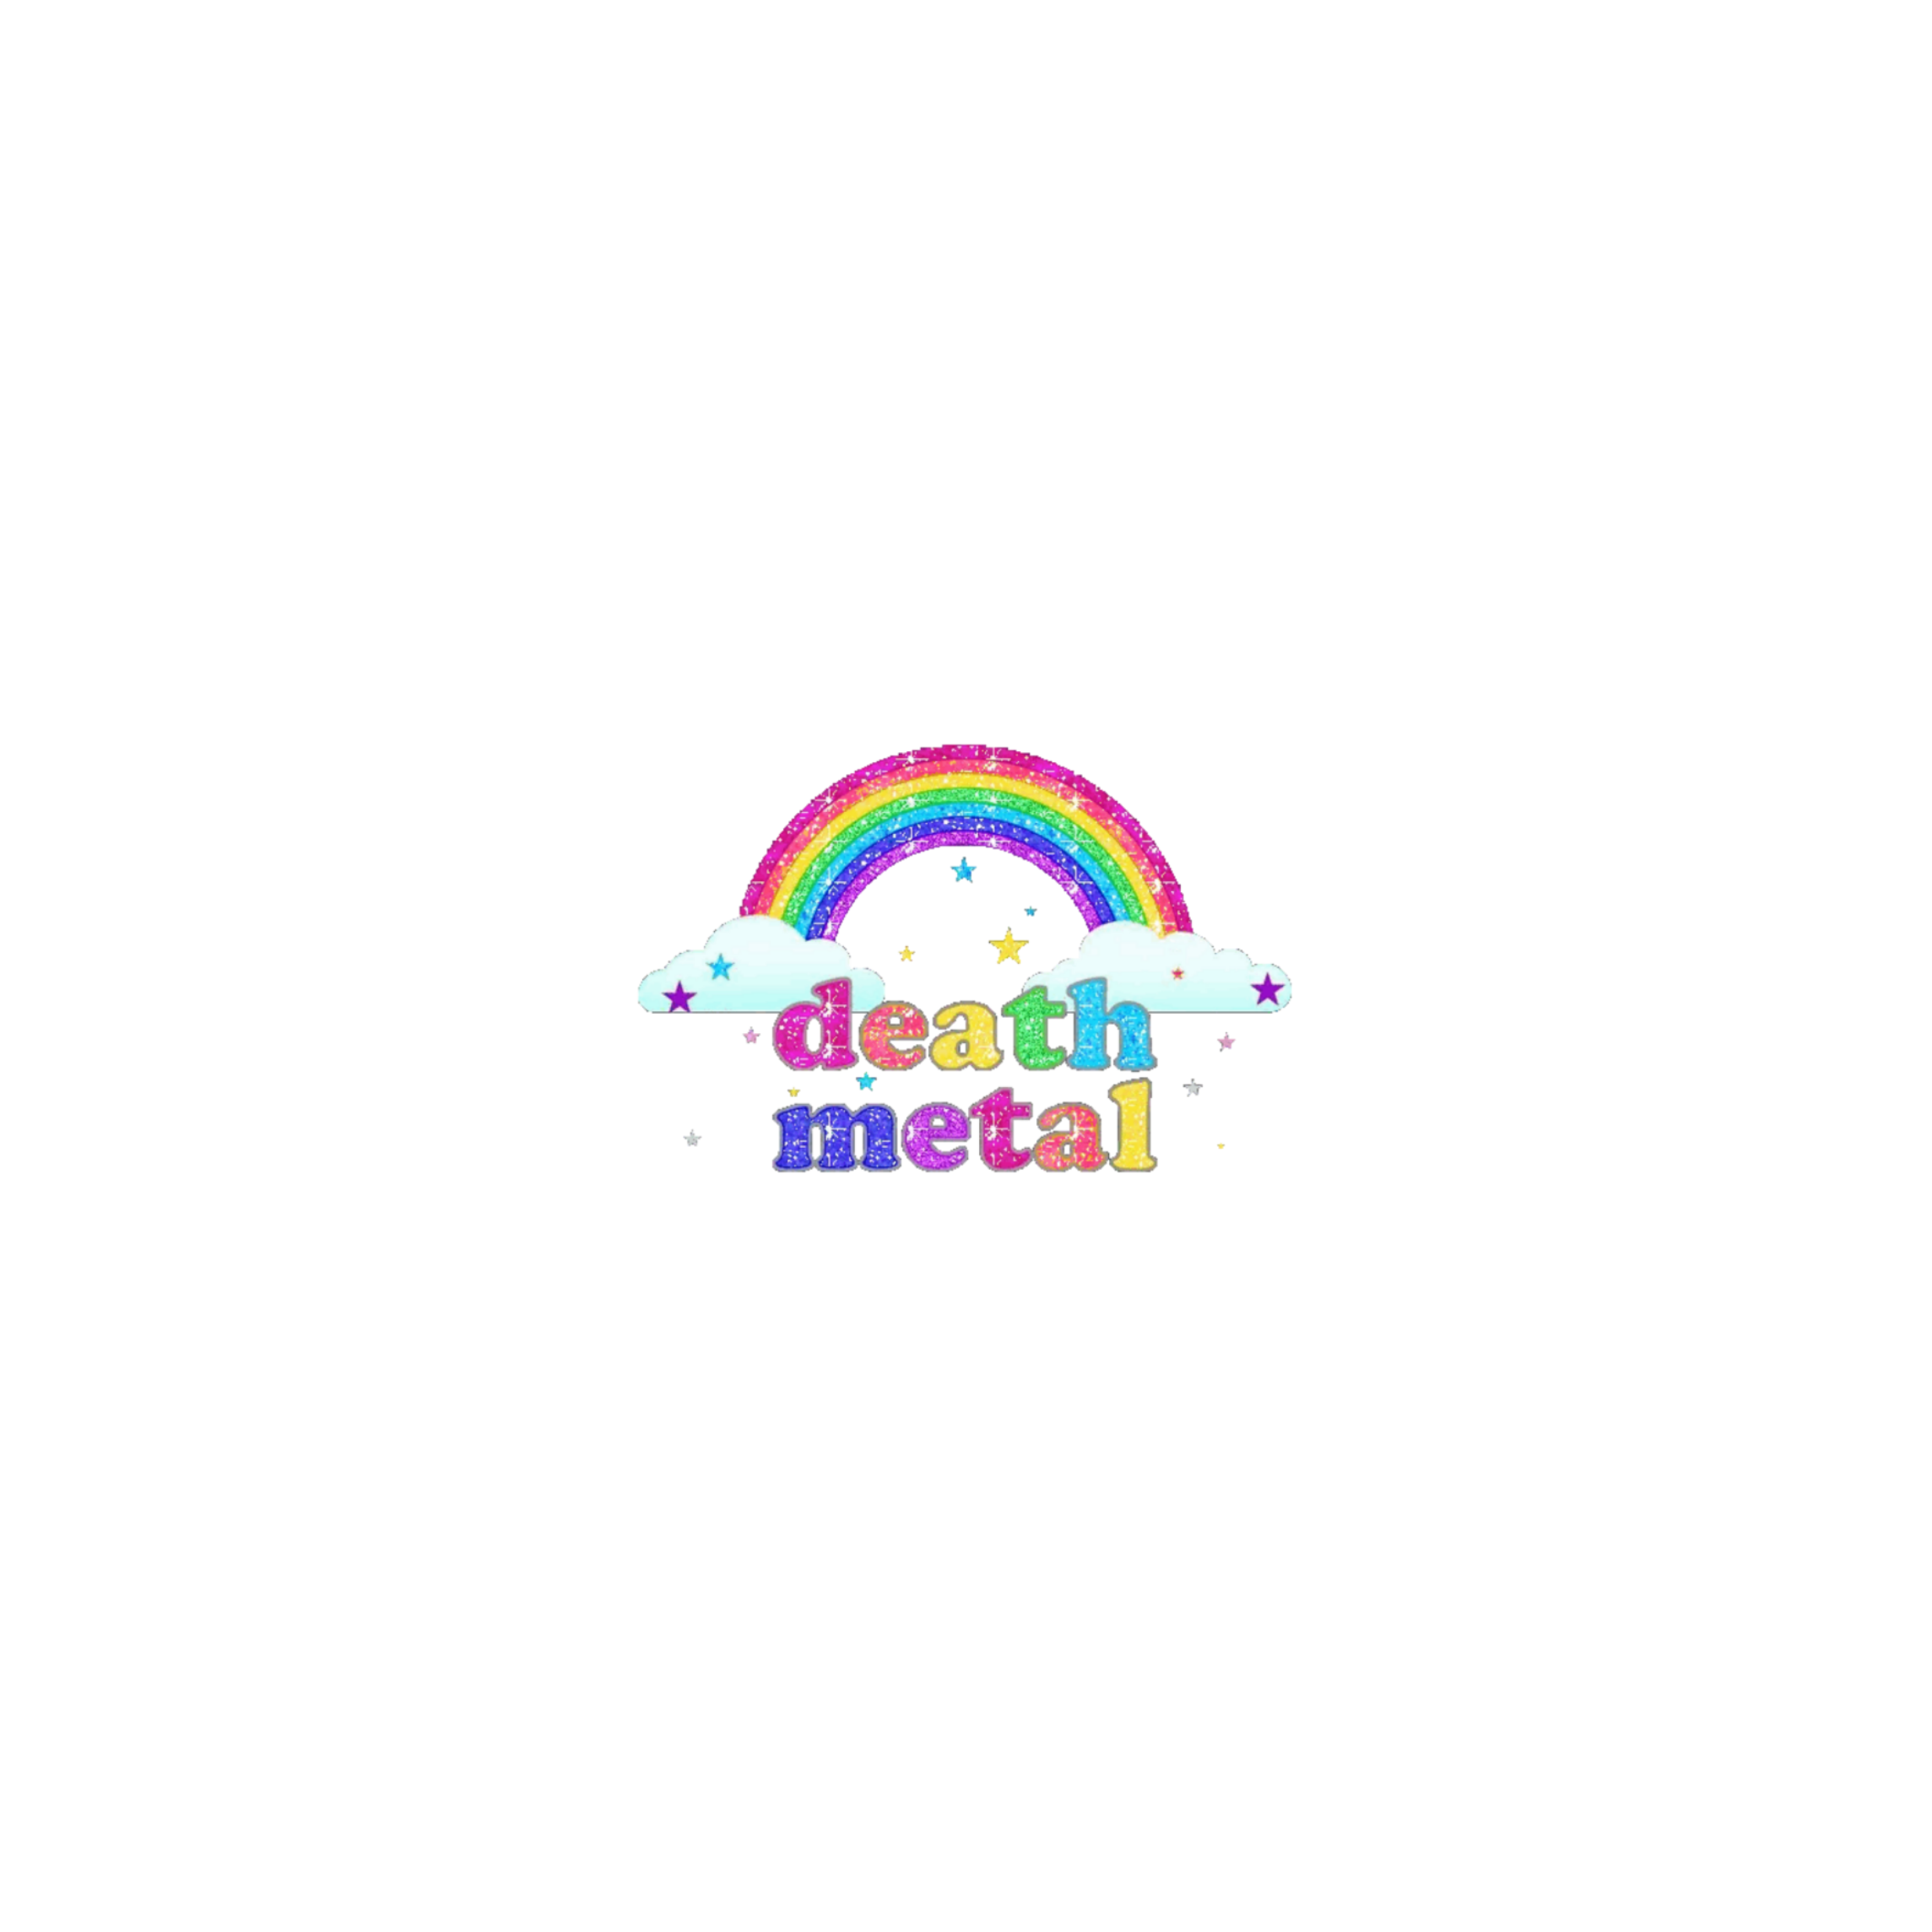 Freetoedit Death Kidcore Rainbow Grudge Aesthetic Png Soft Cute Edgy Cyber Freetouse Remixit Rainbow Aesthetic Rainbow Png Indie Kids